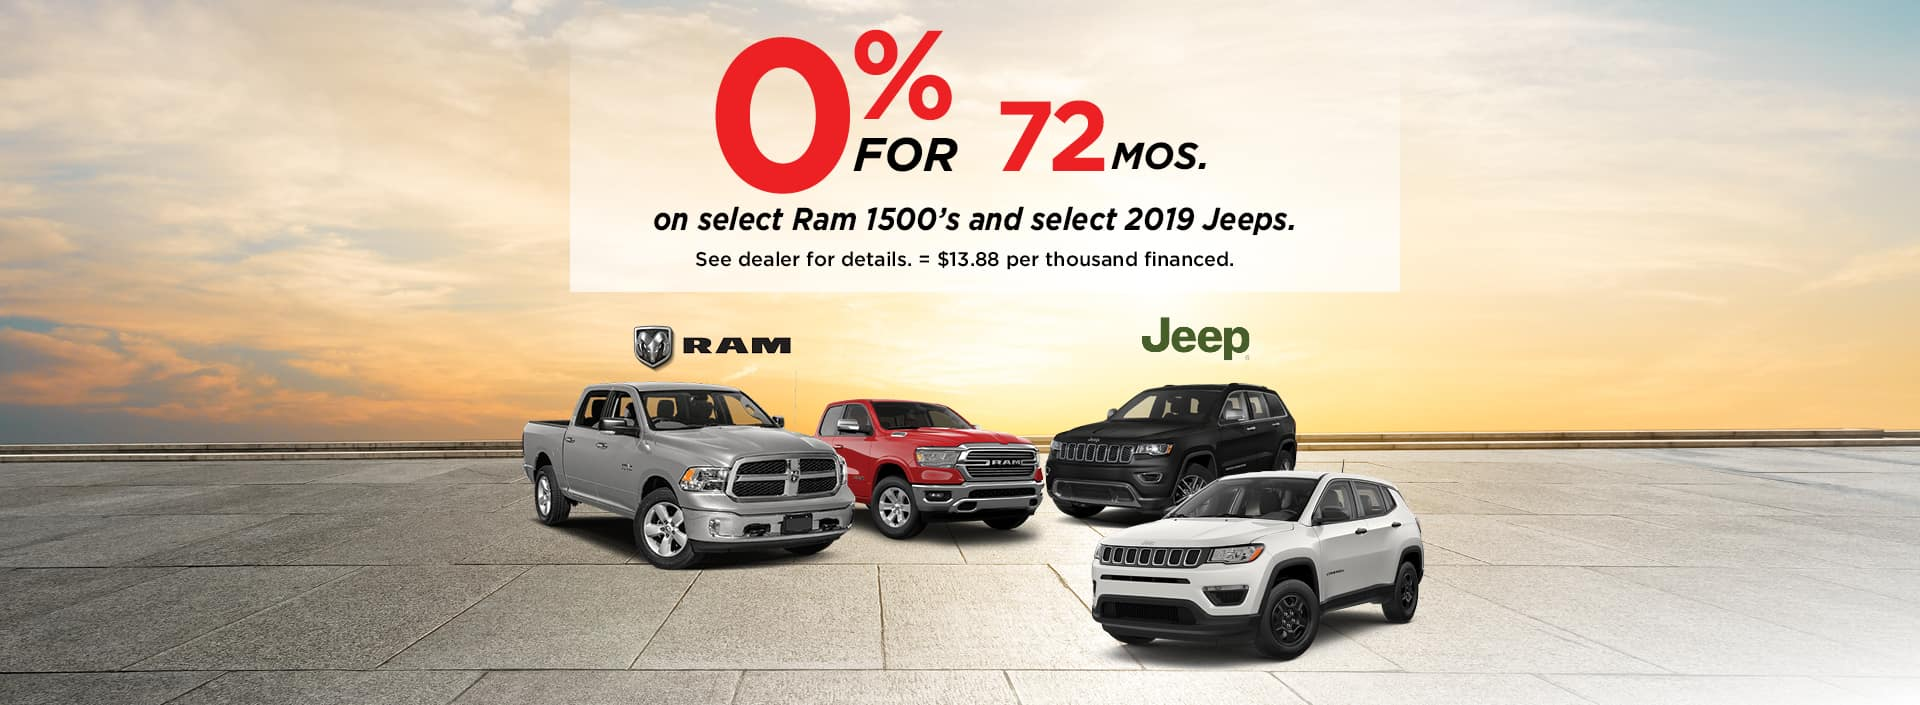 Jeep & Ram July